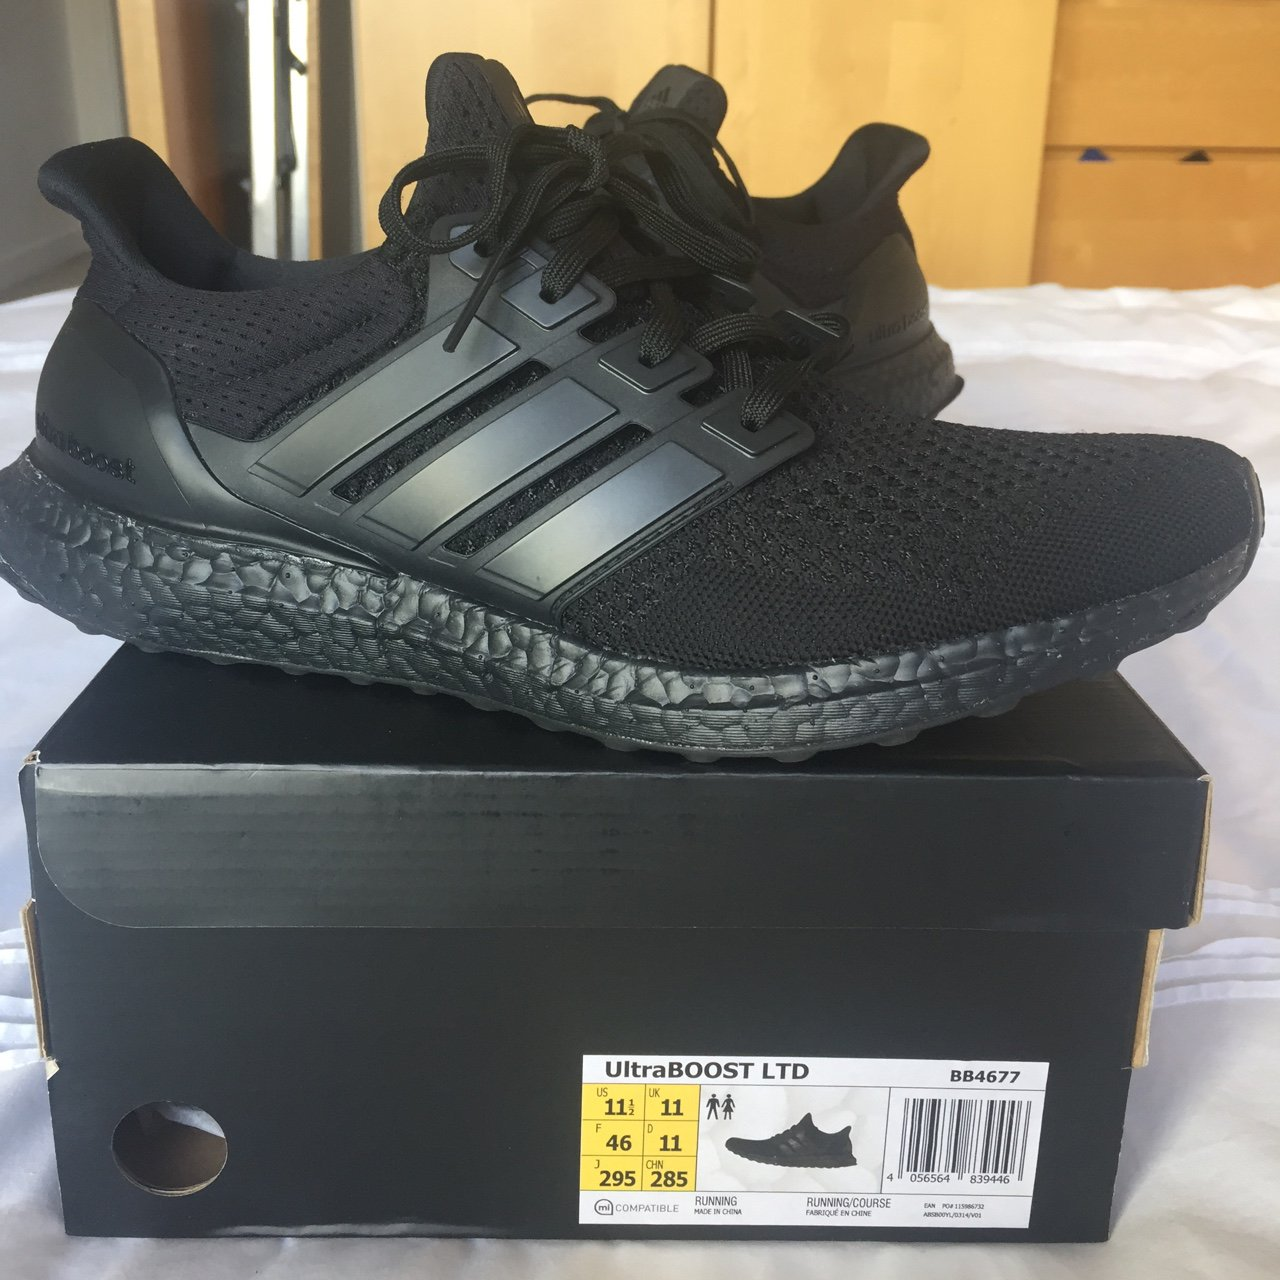 870ad5dec95ce Adidas Ultra Boost 1.0 Triple Black UK 11 ⚫ ⚫ ⚫ Worn once ...